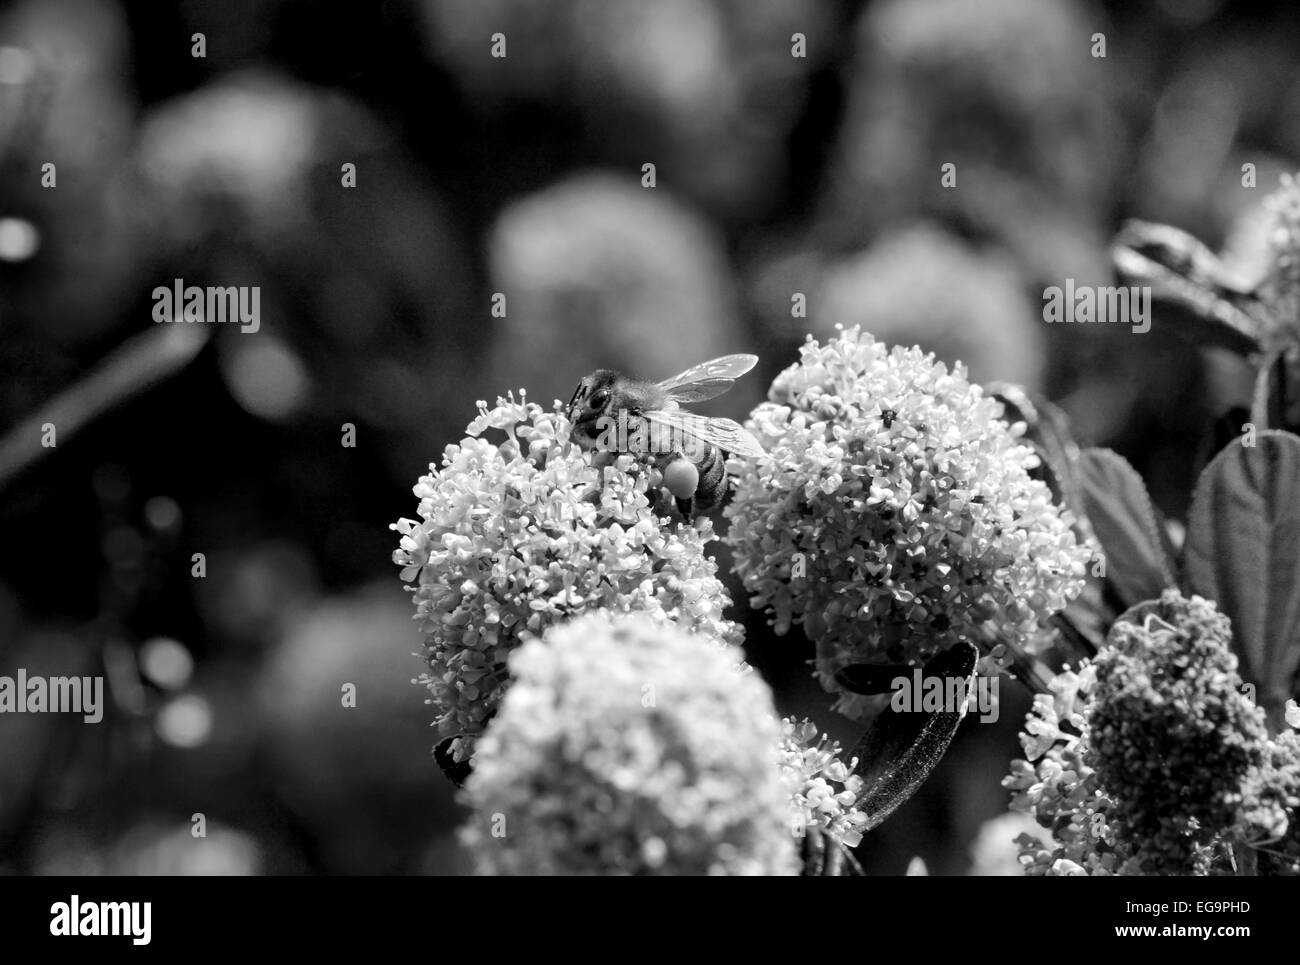 Macro of a honey bee with full corbiculas on a ceanothus flower - monochrome processing - Stock Image